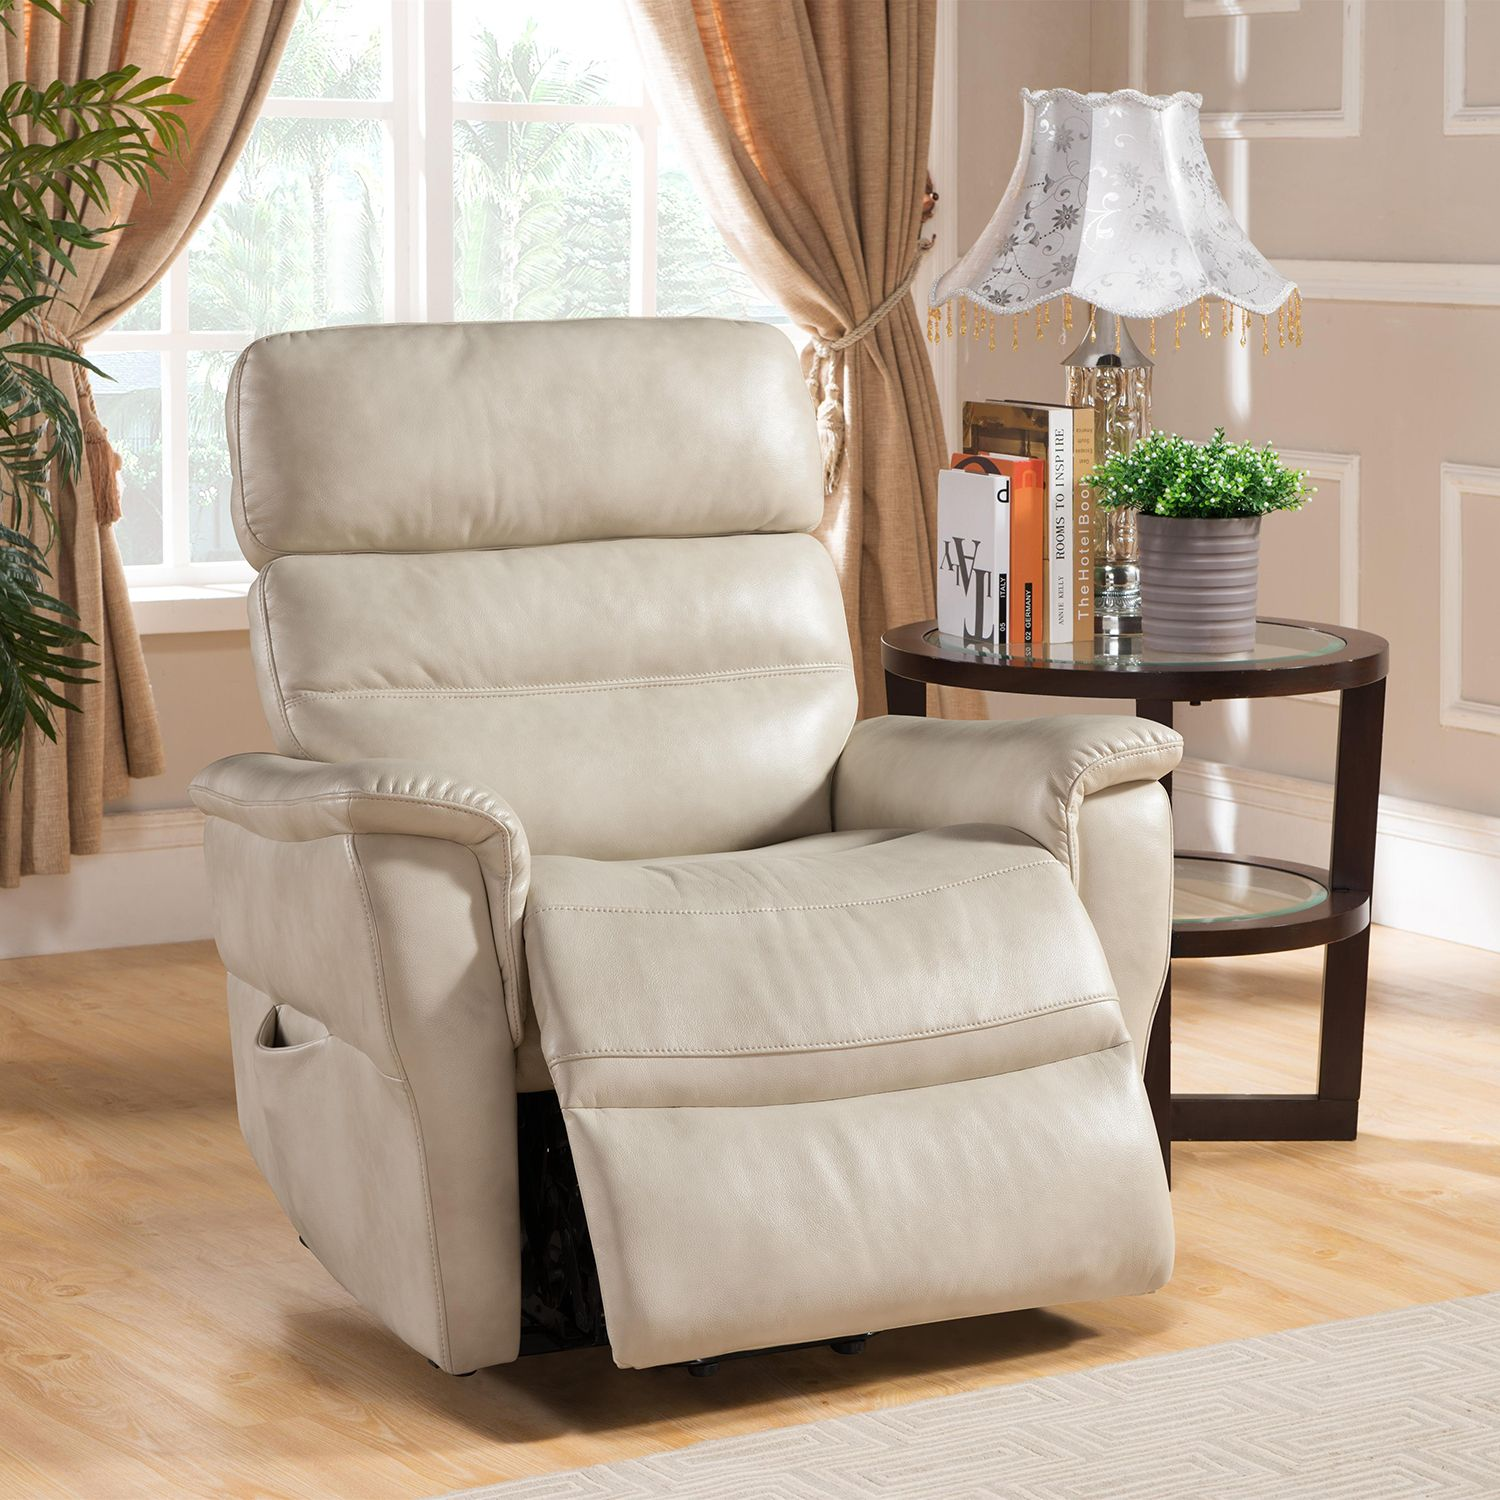 Averycreamc (With images) Lift chairs, Power recliners